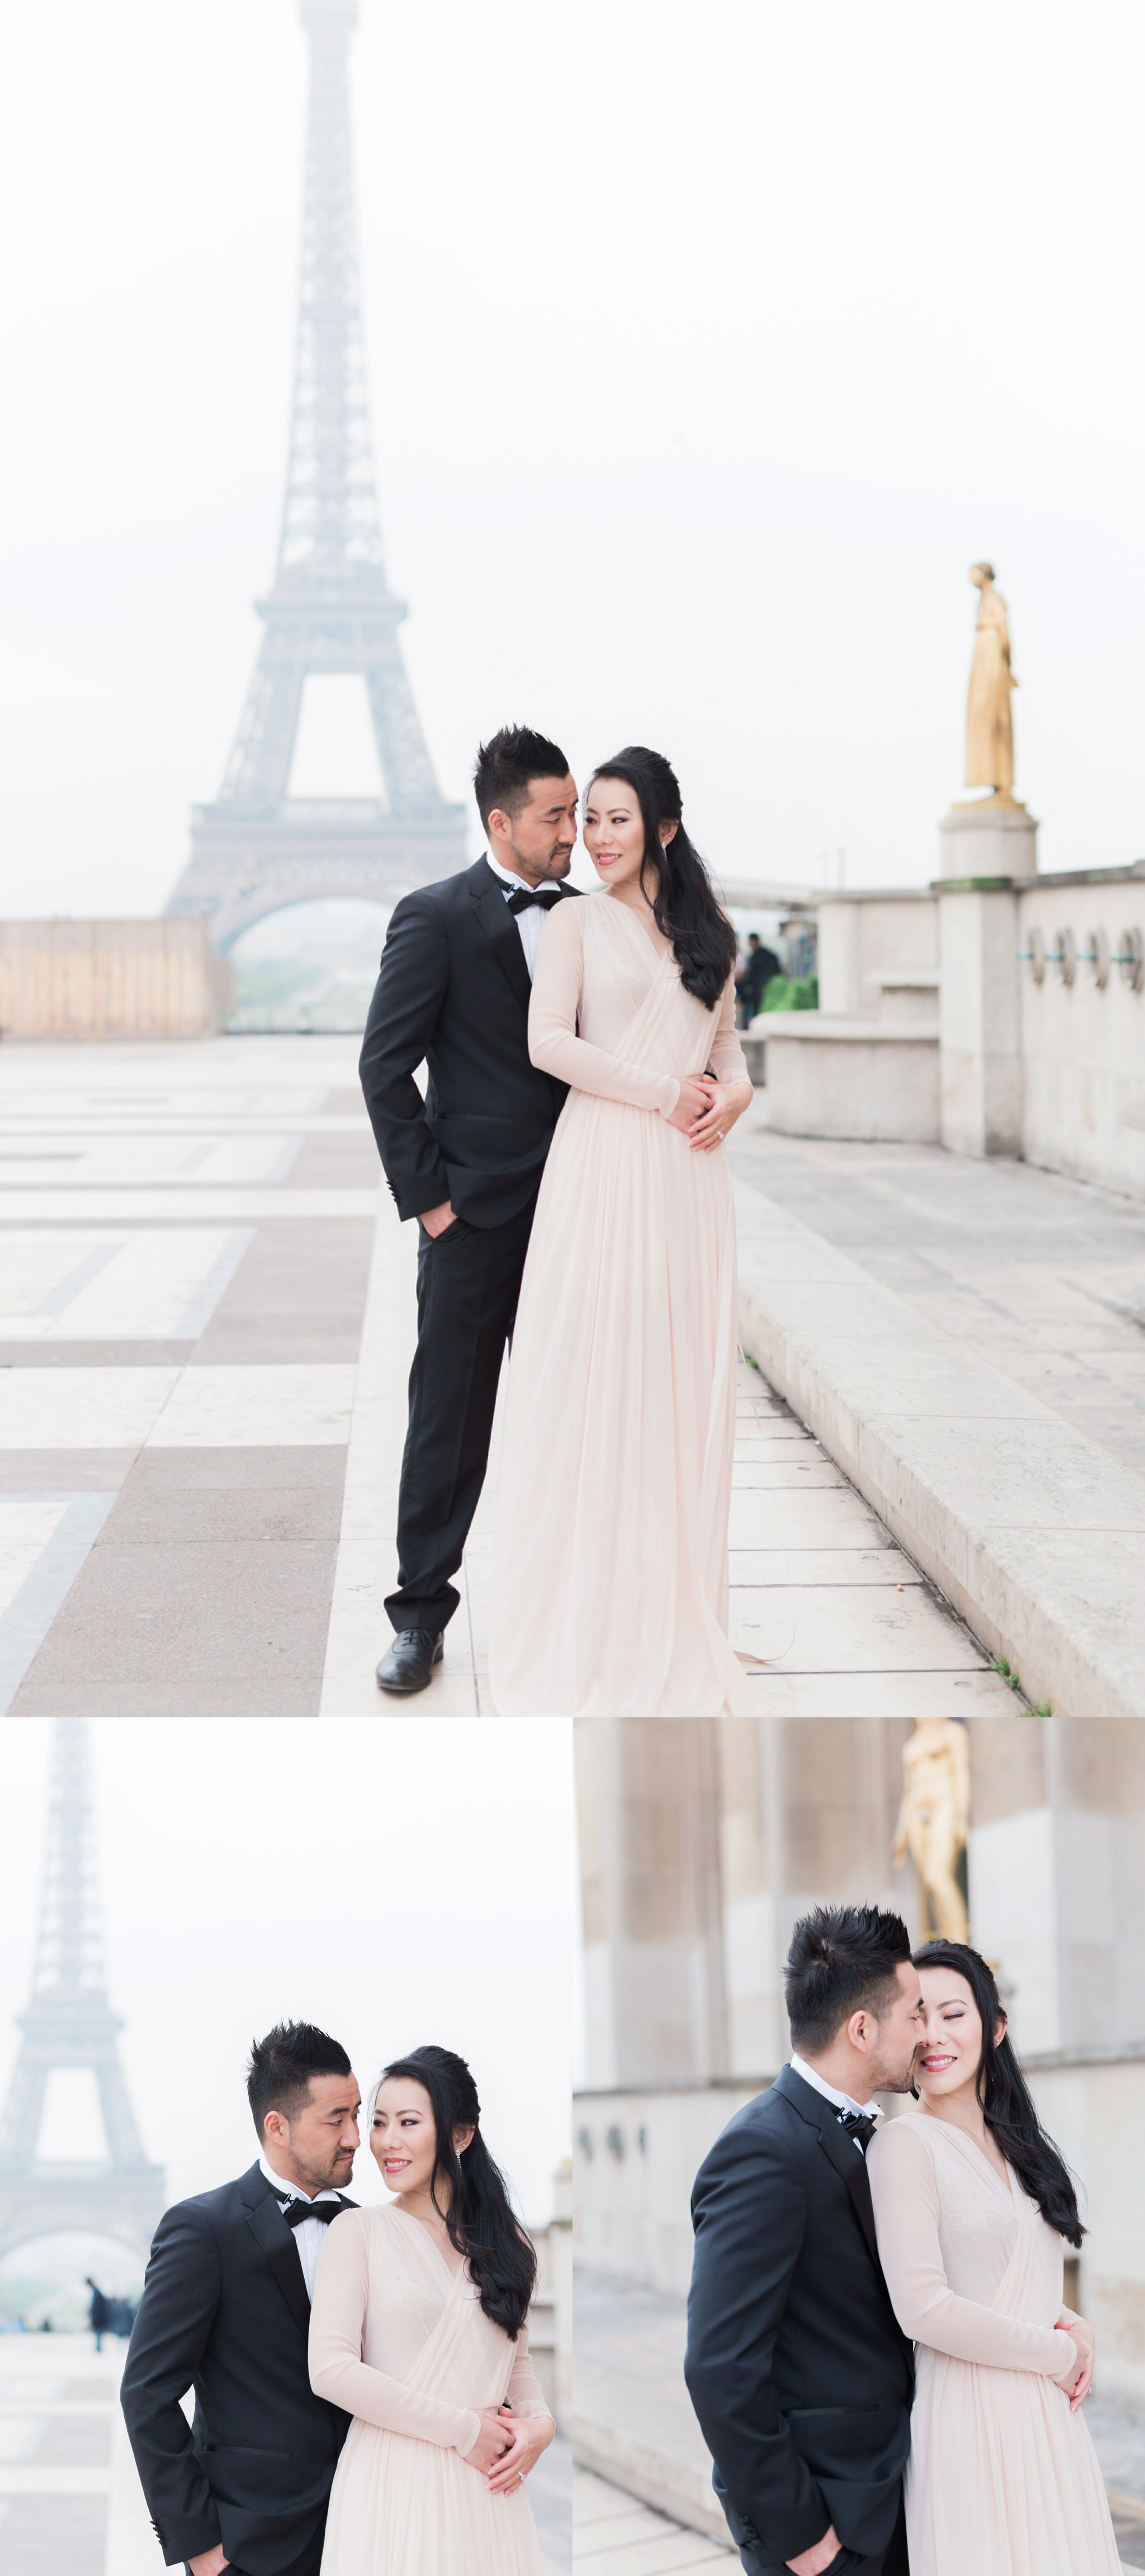 Suzanne_li_photography_paris_engagement_shoot_0025.jpg